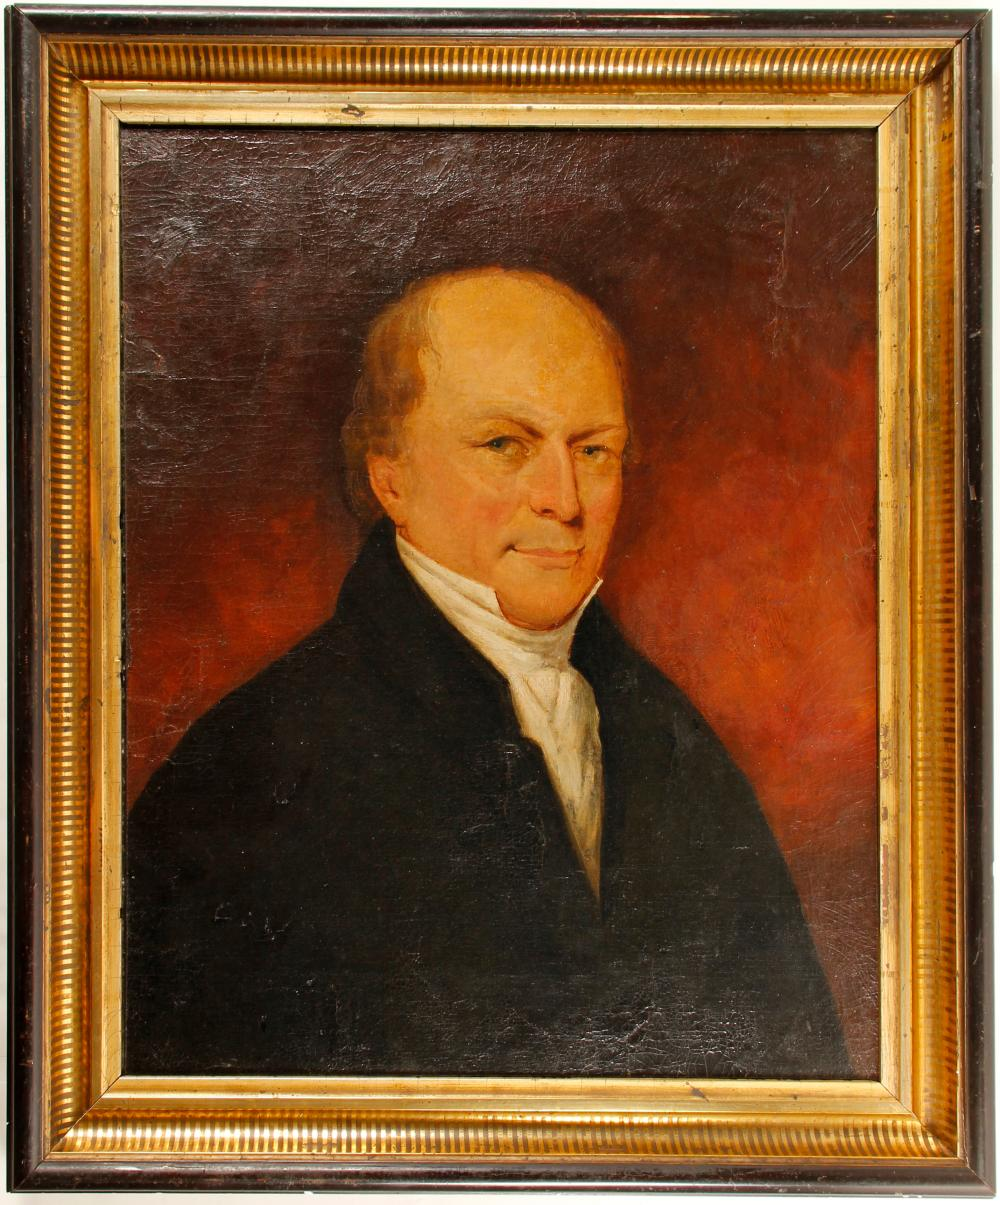 Lot 1079: Portrait of a Man, American, c1750 (57753)